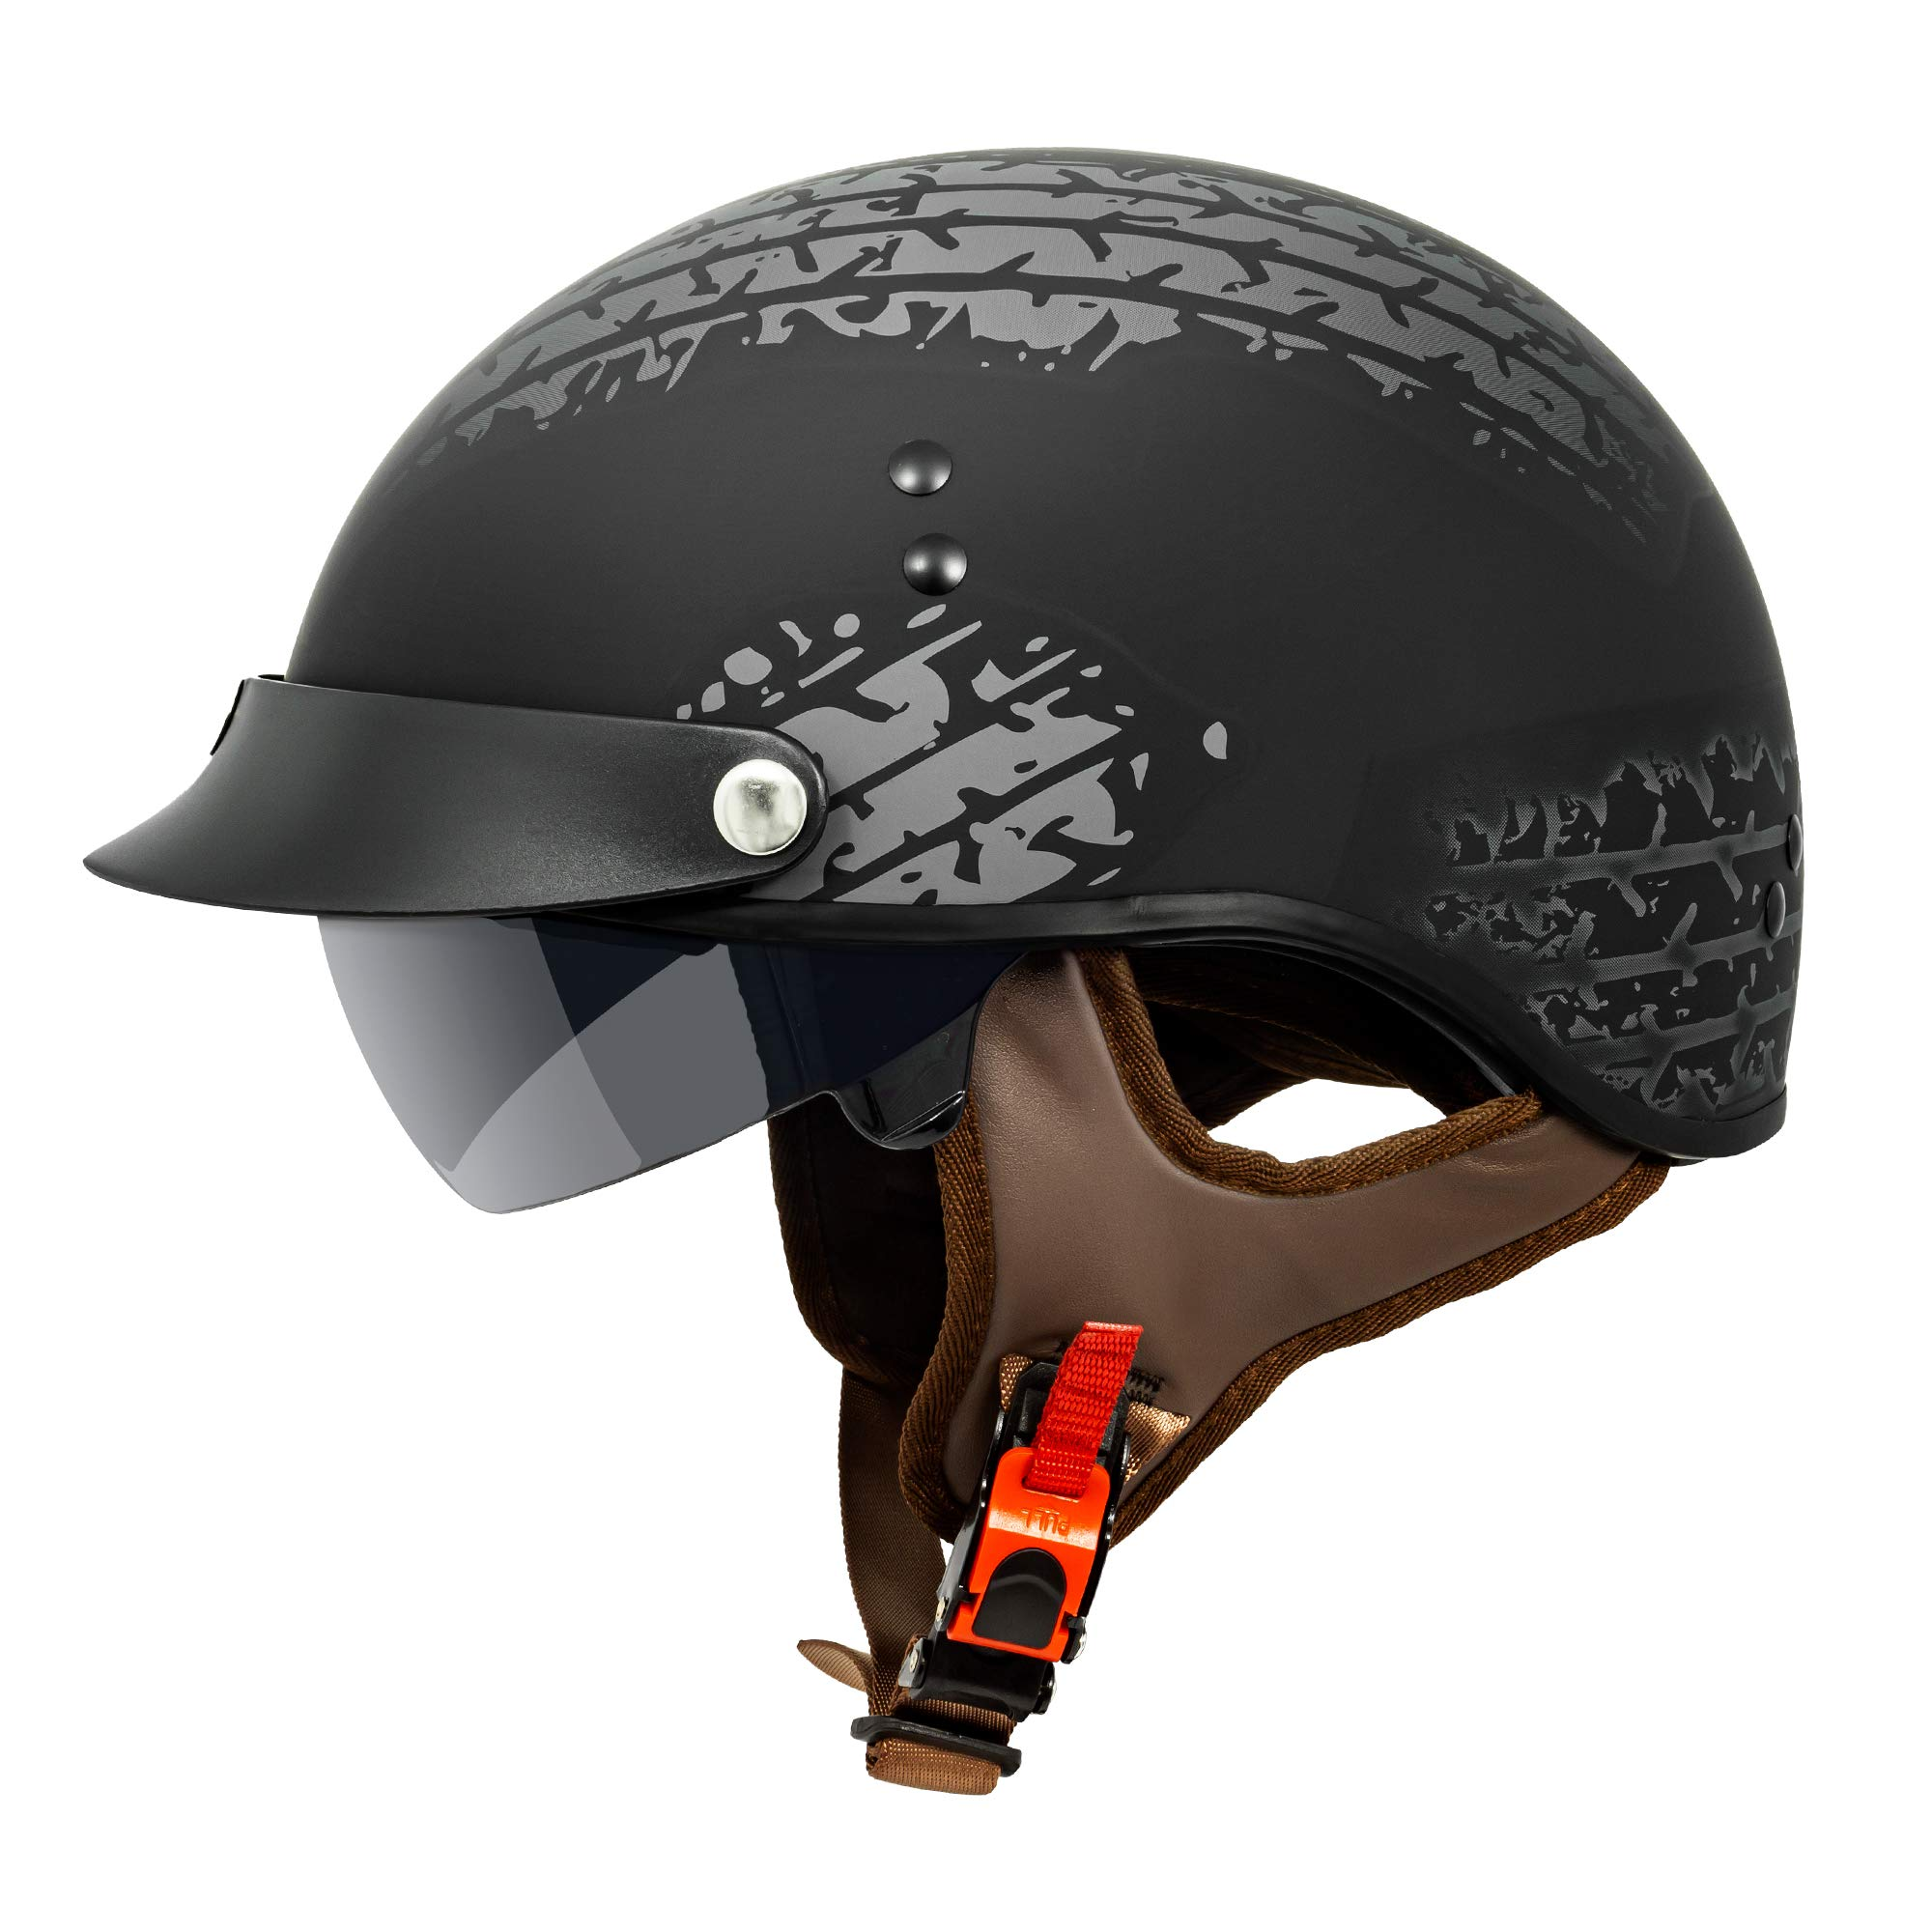 VCAN Cruiser Solid Flat Black Half Face Motorcycle Helmet with Drop-Down Sun Visor, Removable Peak and Quick Release Buckle (Tread, X-Small)